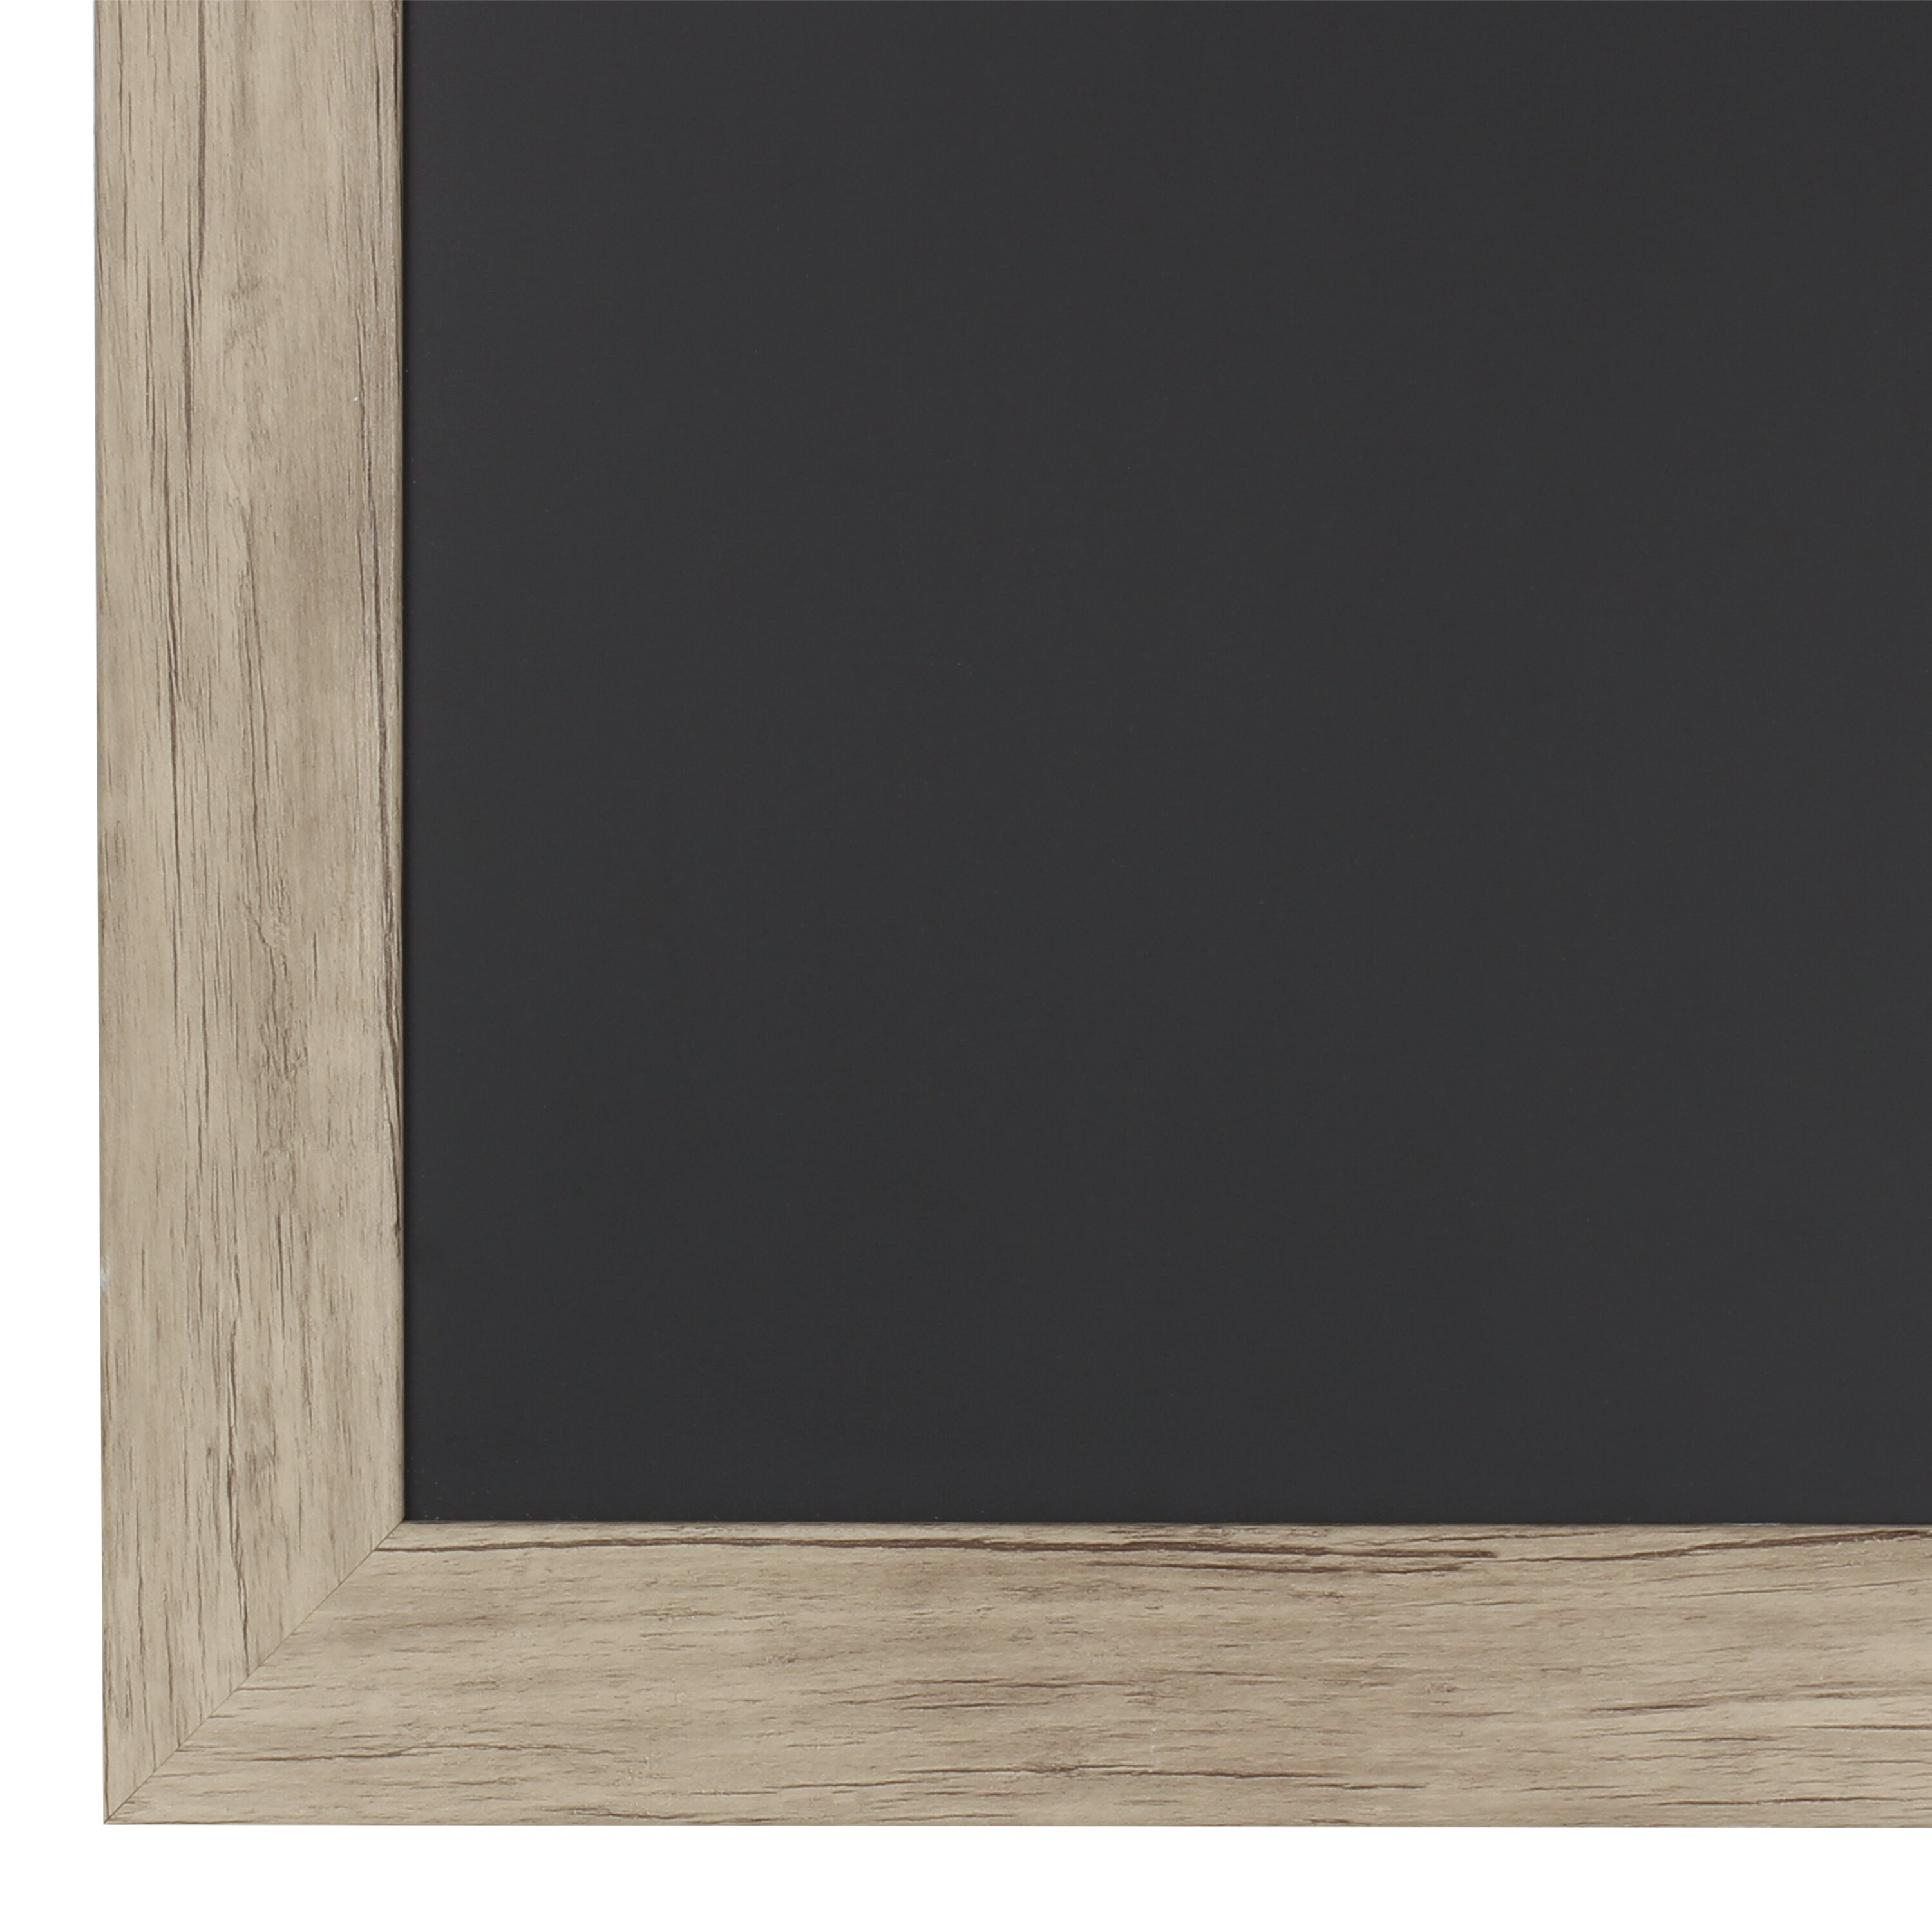 Uniek beatrice magnetic wall mounted chalkboard 18 x 27 for 18 x 27 window